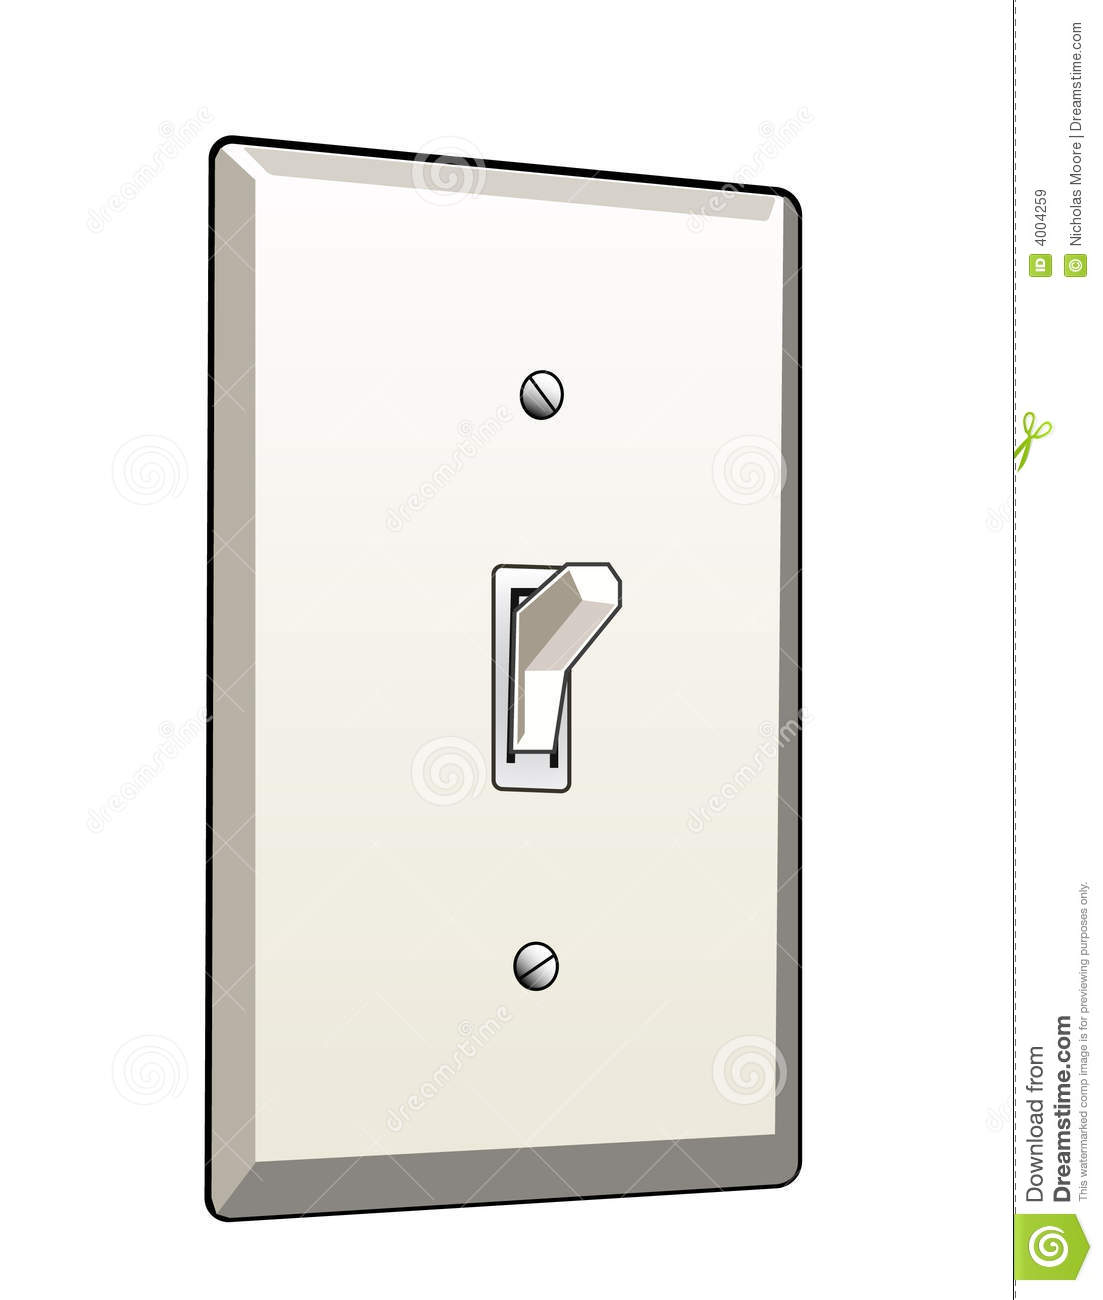 Switch Light Light Switch Stock Vector Illustration Of Sale Power 4004259